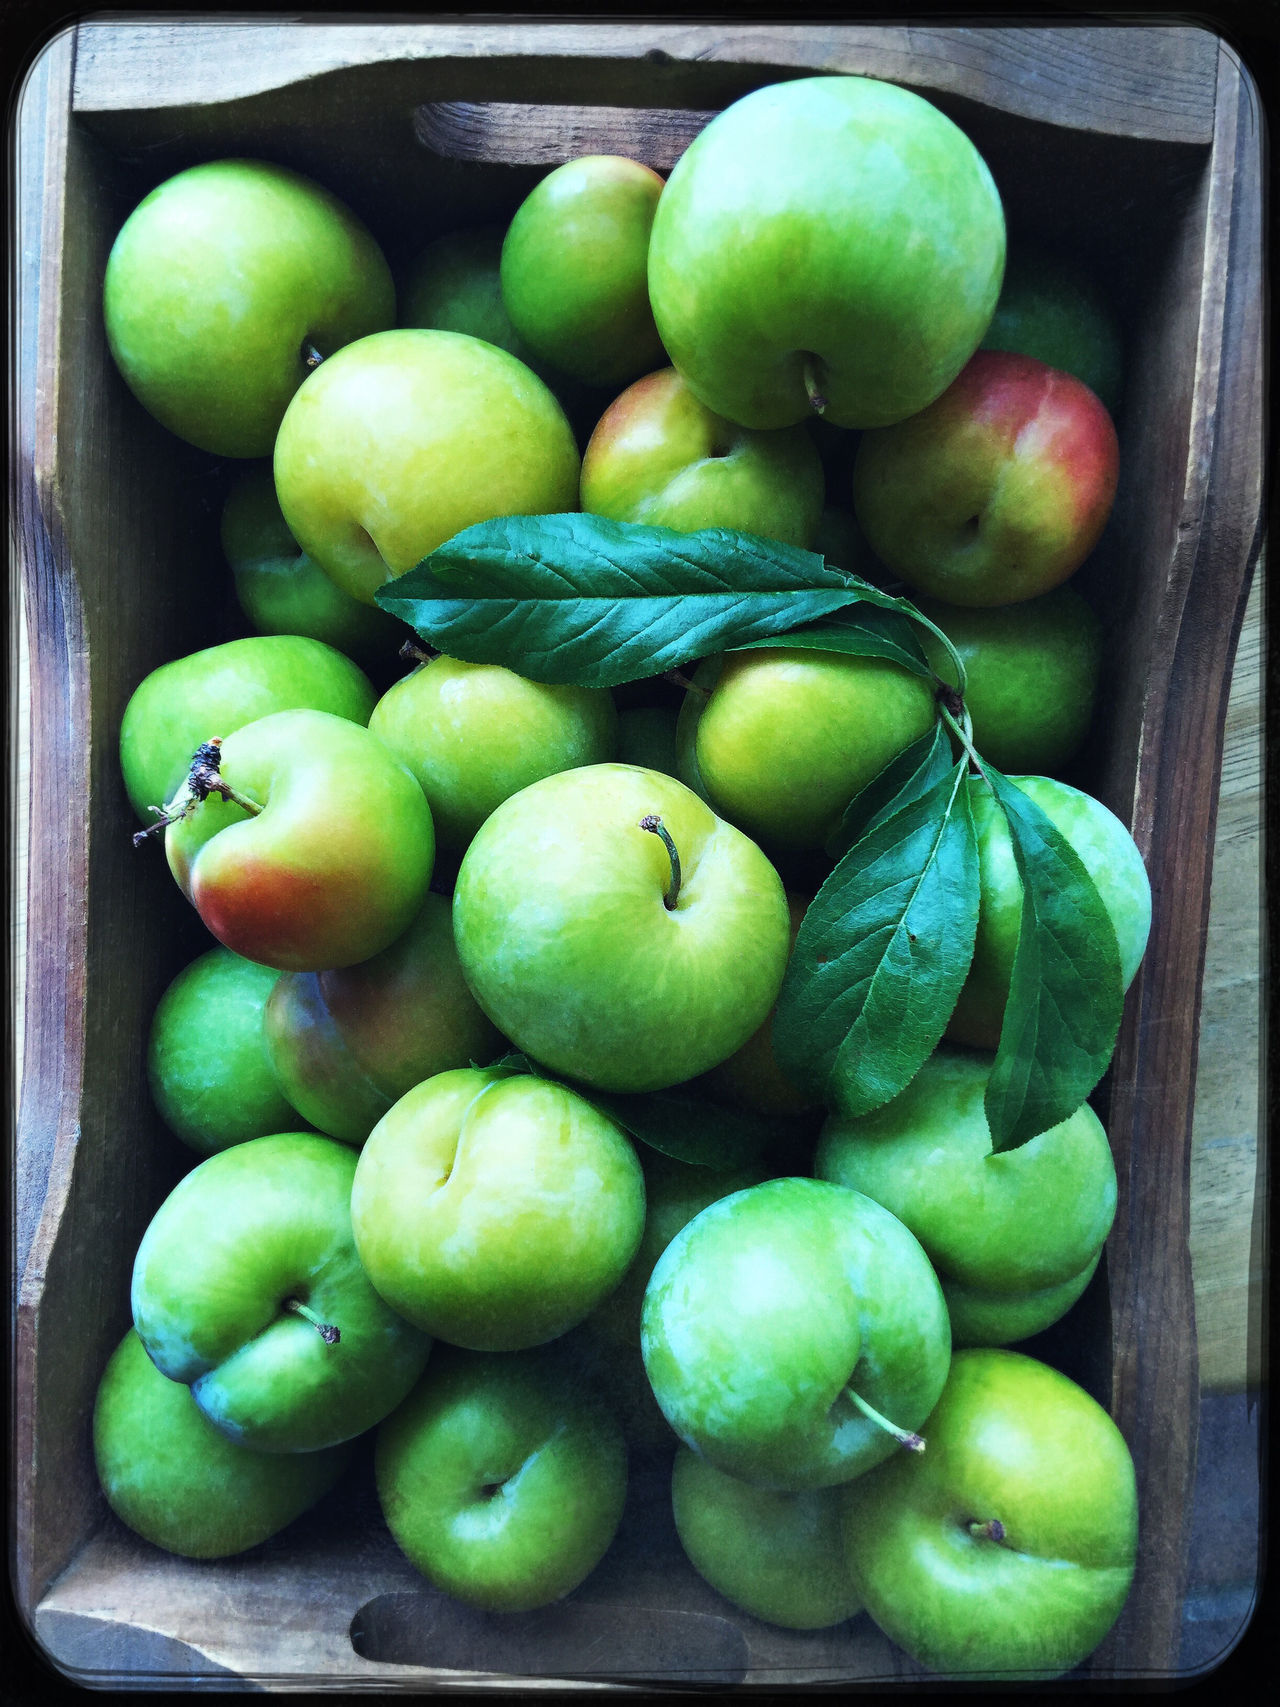 Summer plums in wooden box Abundance Abundance Of Box Close-up Fresh Fruits Green Color Harvest Healthy Eating Indoors  Leaves Natural Light Nobody Organic Overhead Phone Camera Plums Produce Ripe Several Snacks Snapshots Of Life Summer Sweet Textures Wood - Material